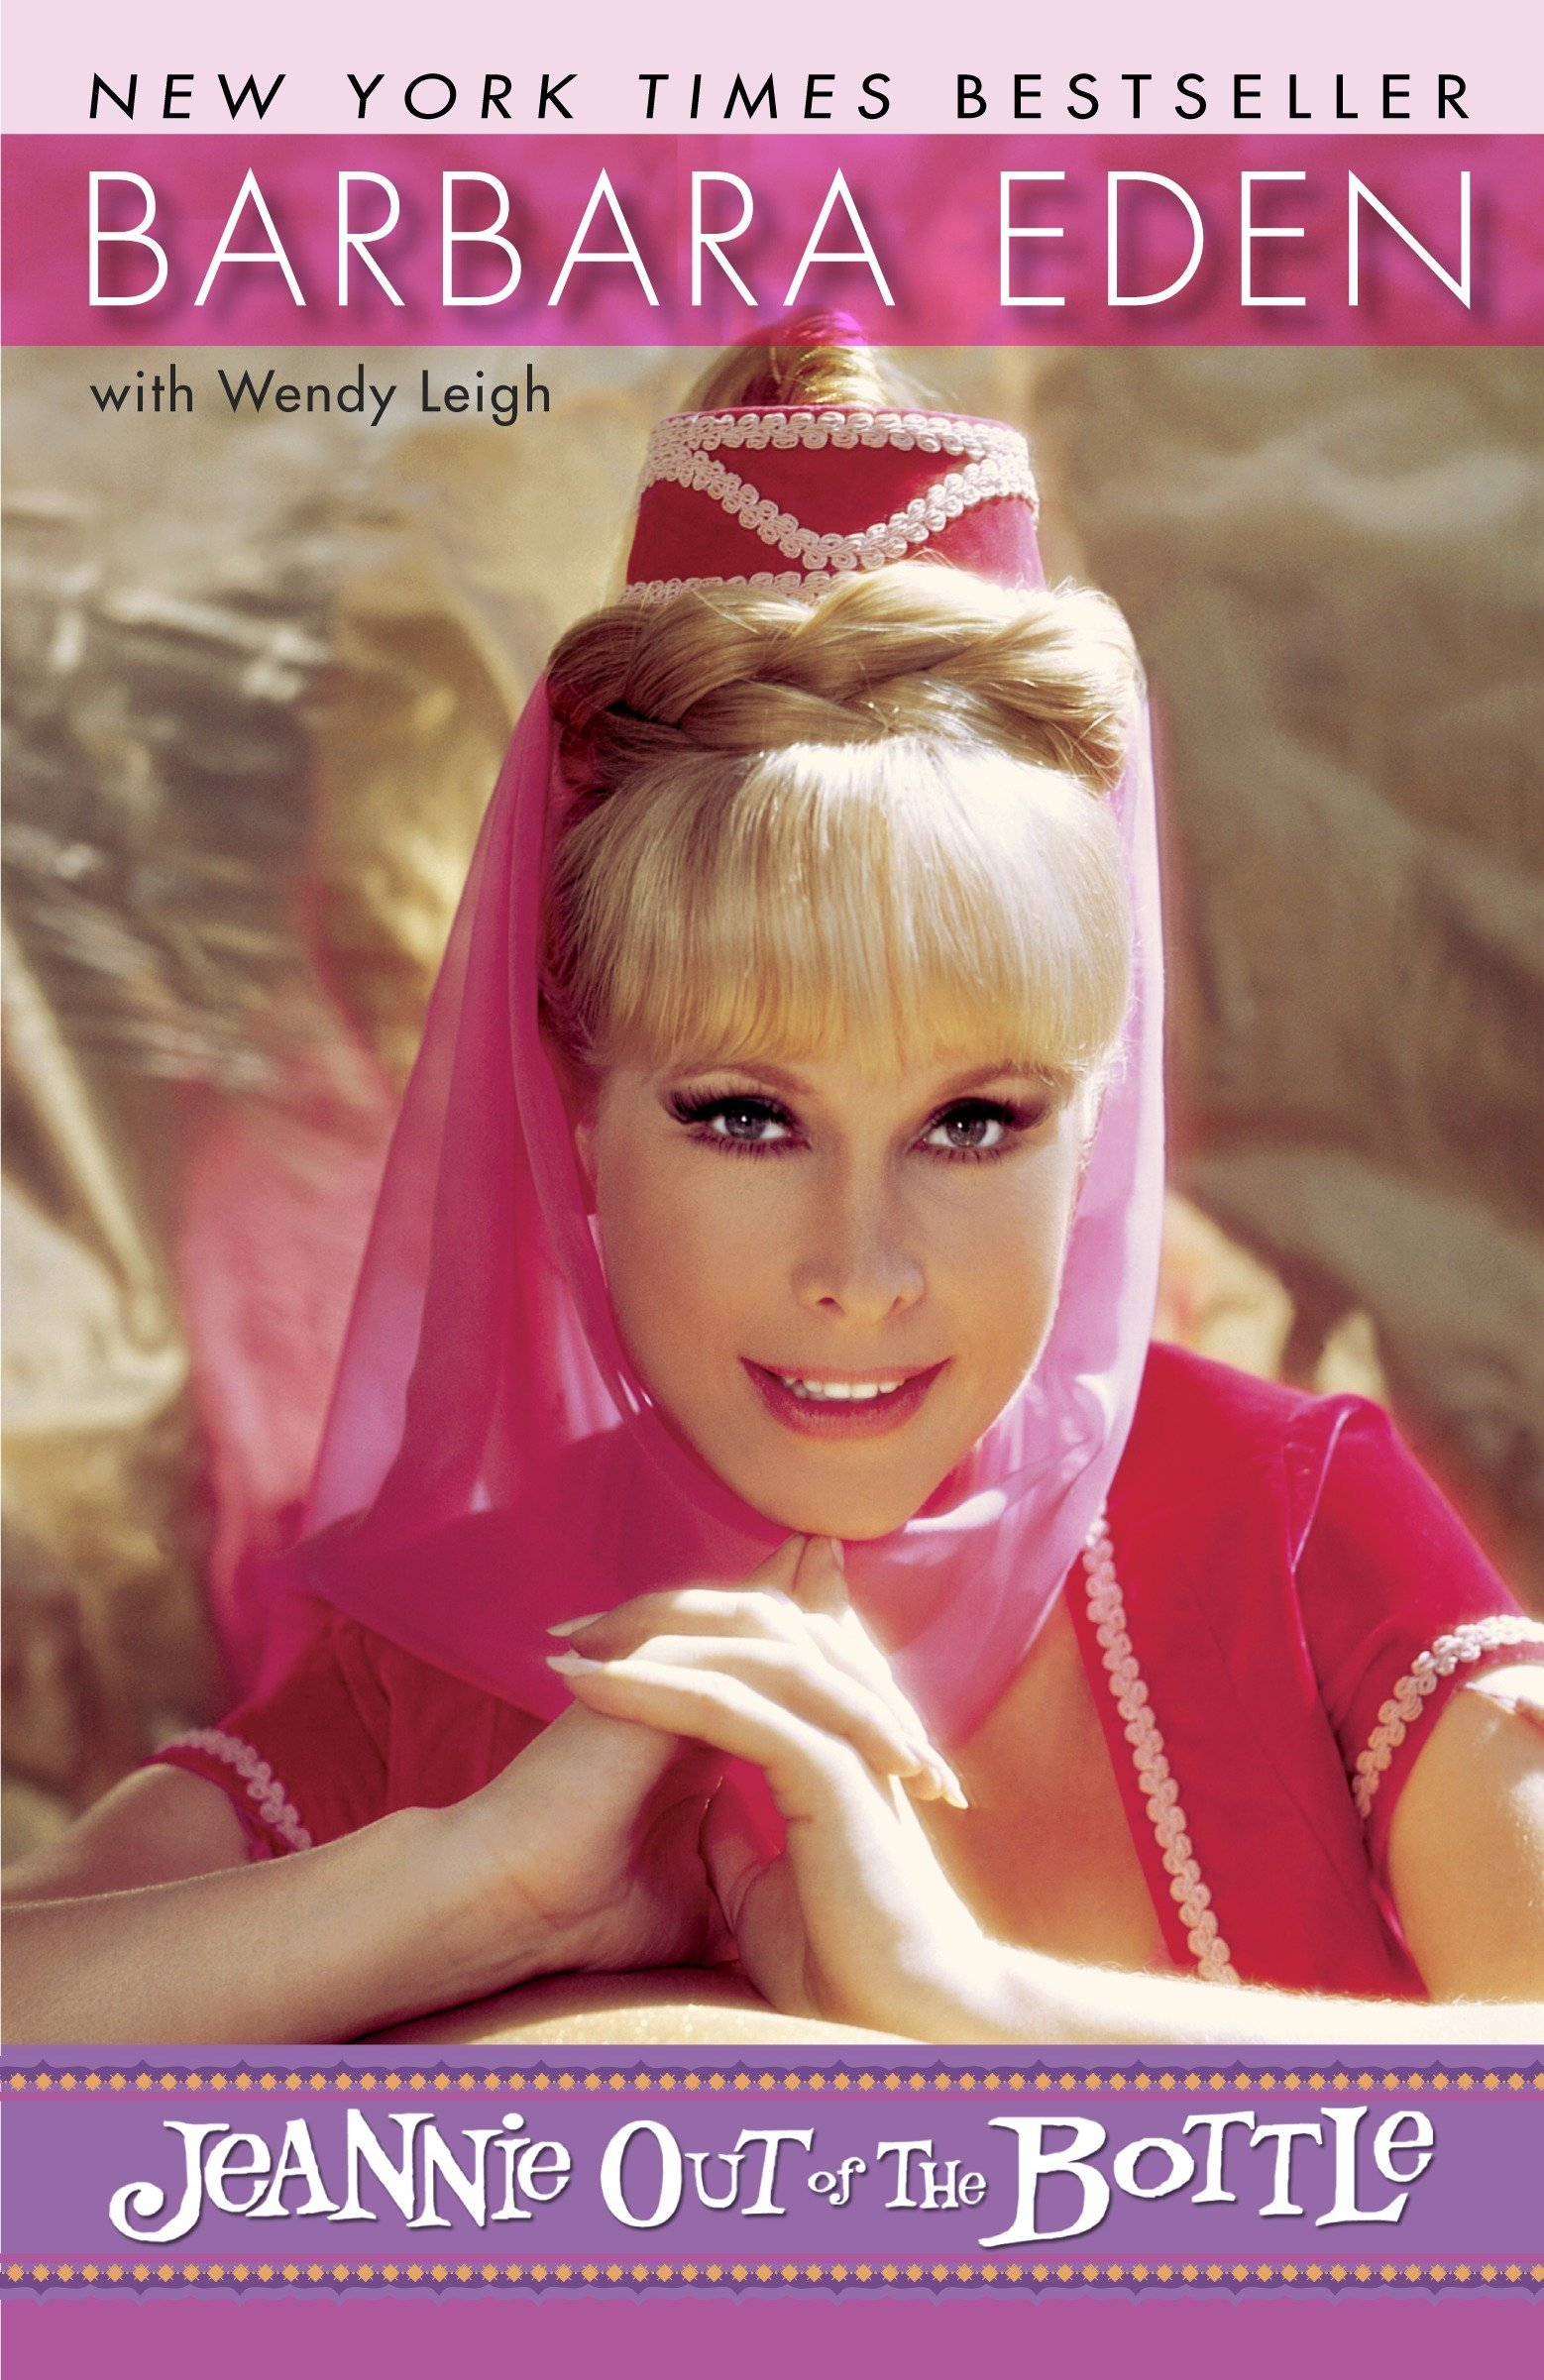 Barbara Eden Nude Photos 1